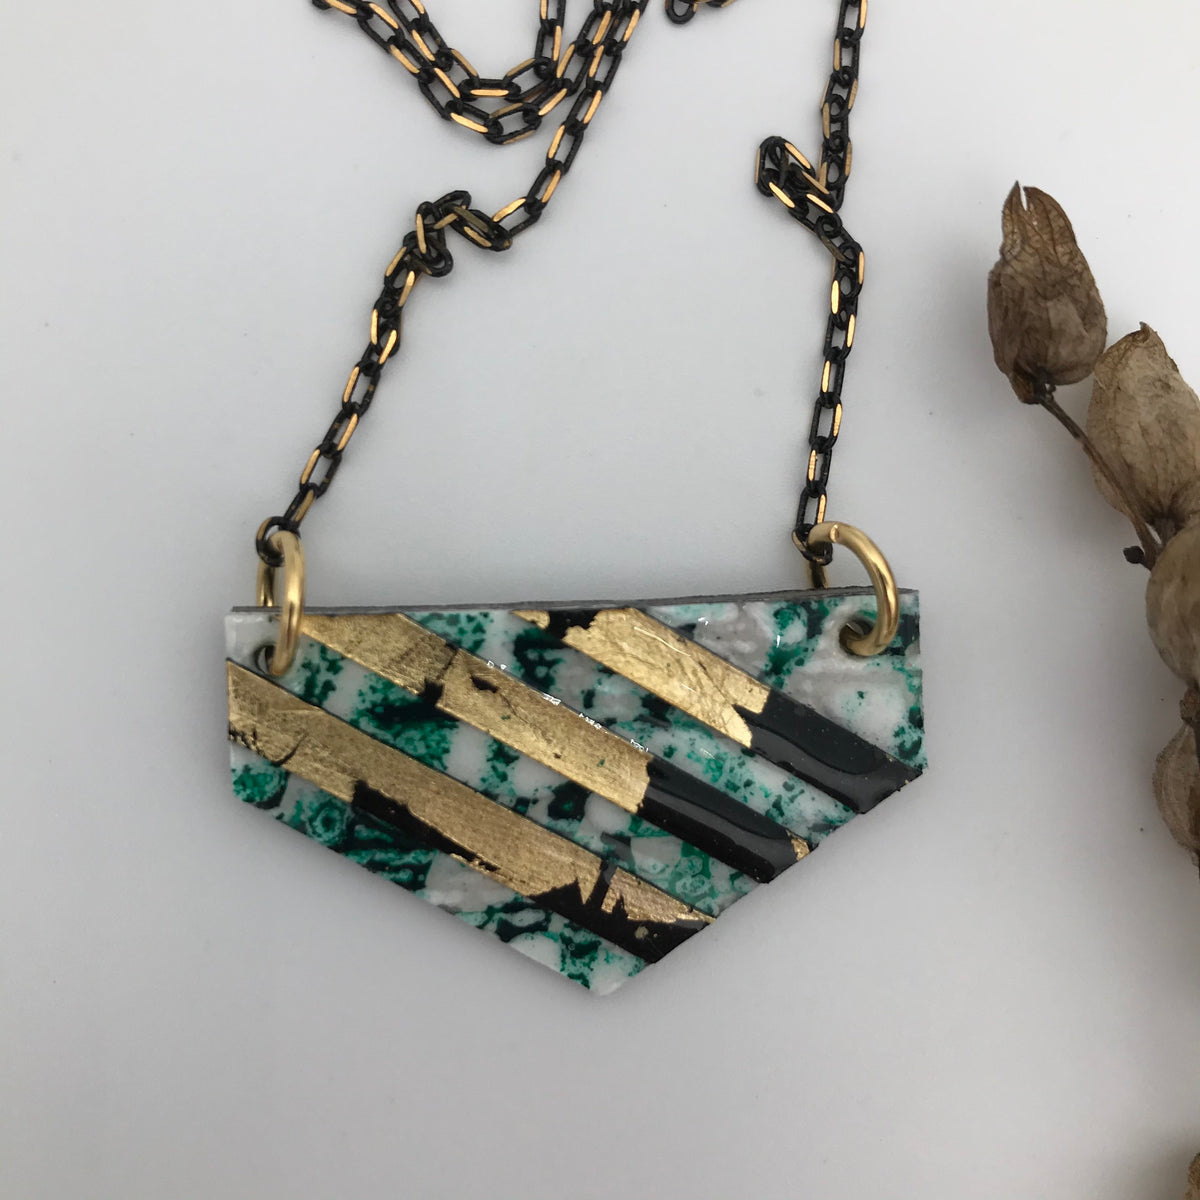 Ralston batik textile necklace in dark green/black/gold